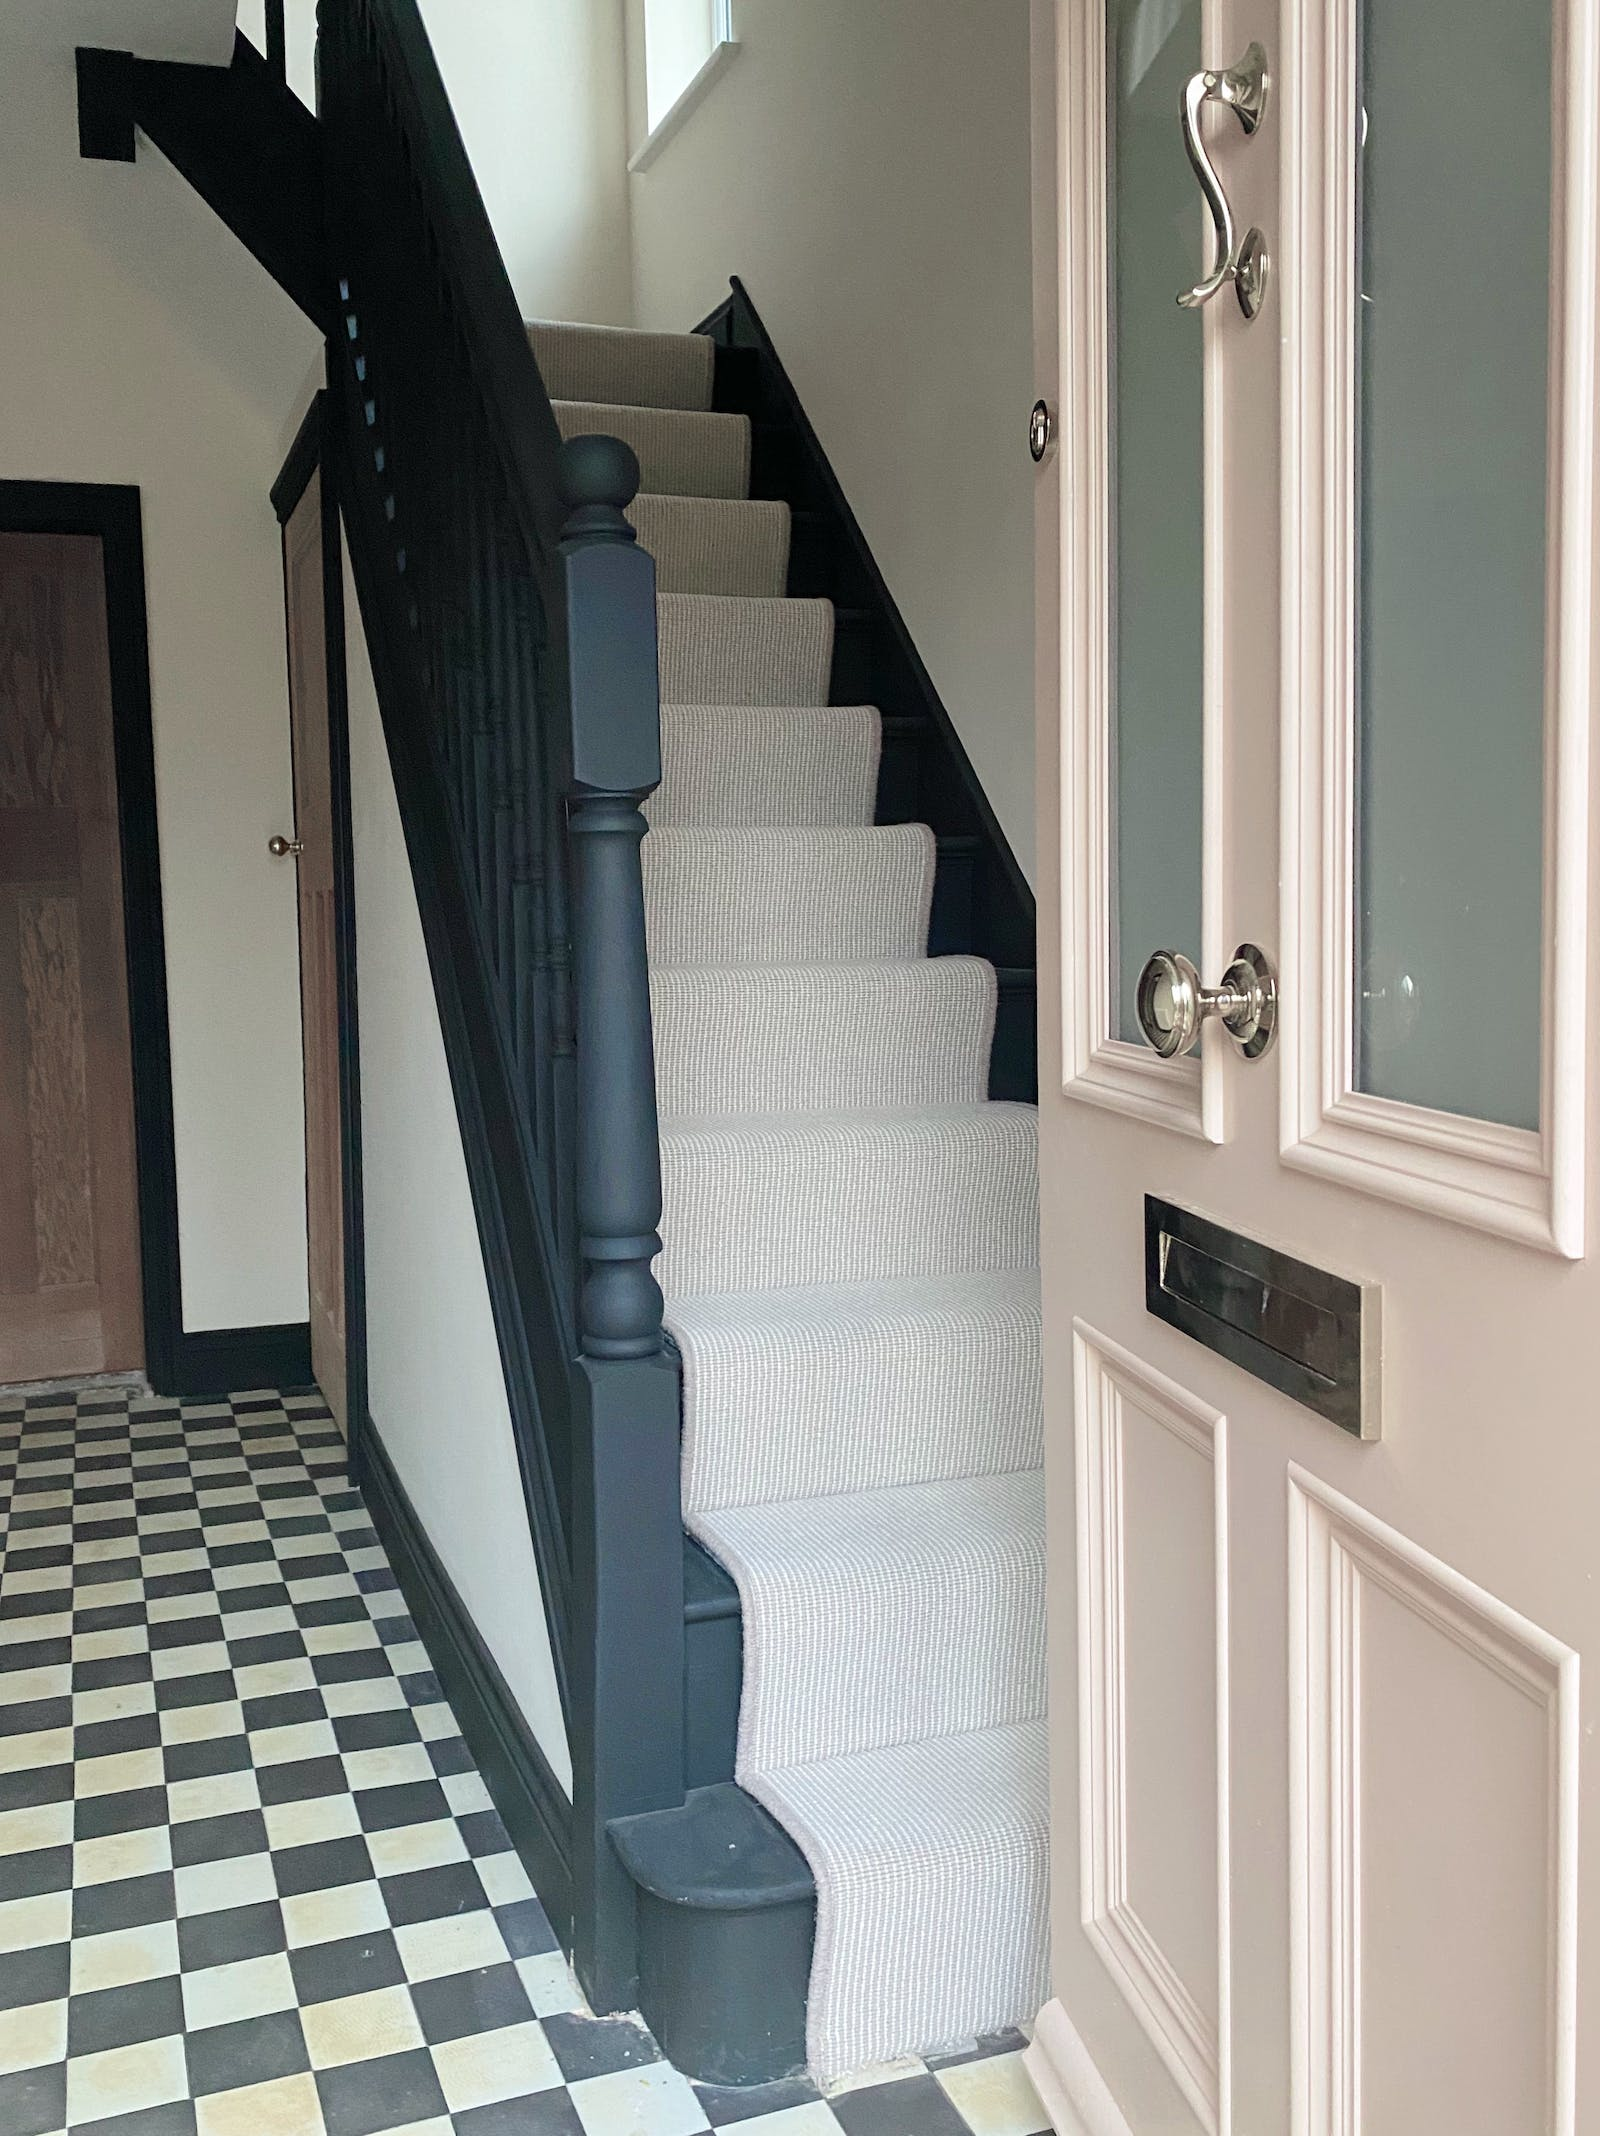 Image of entrance hall freshly painted with monochrome themed stairs